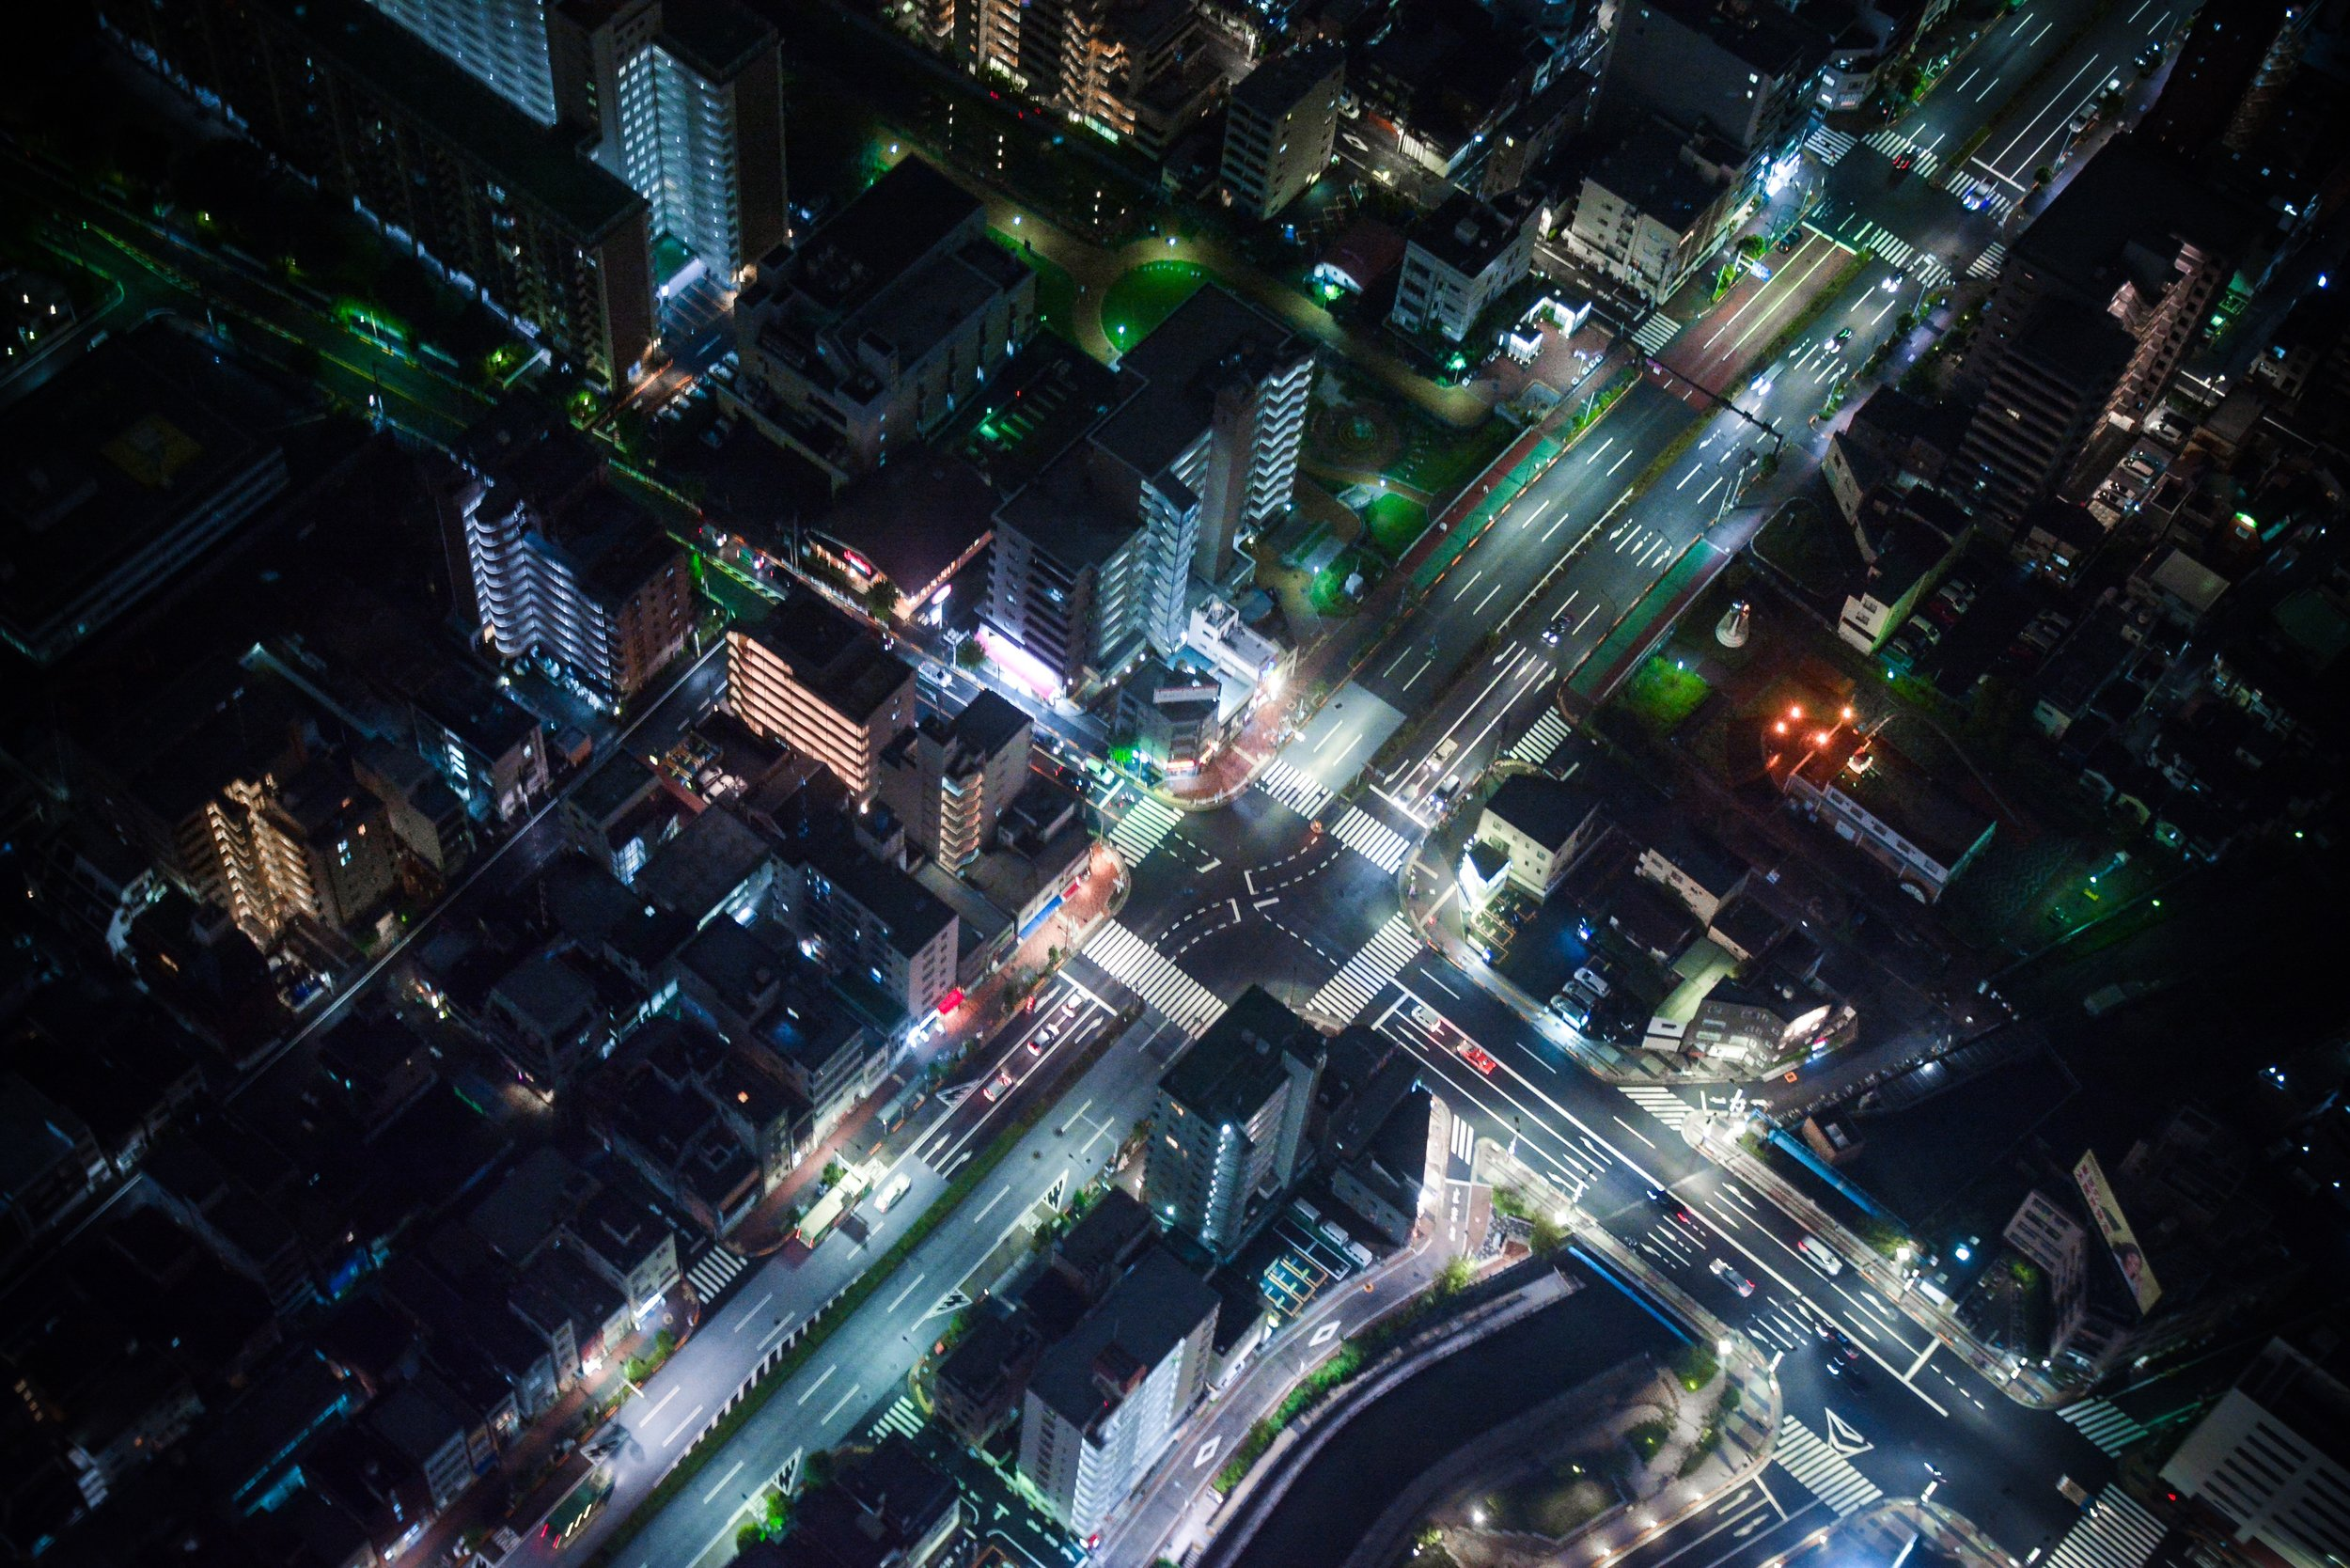 Buildings, streetlights, cars, phones, and keychain bobbles—practically all the things in this image—can now be connected to the Internet.